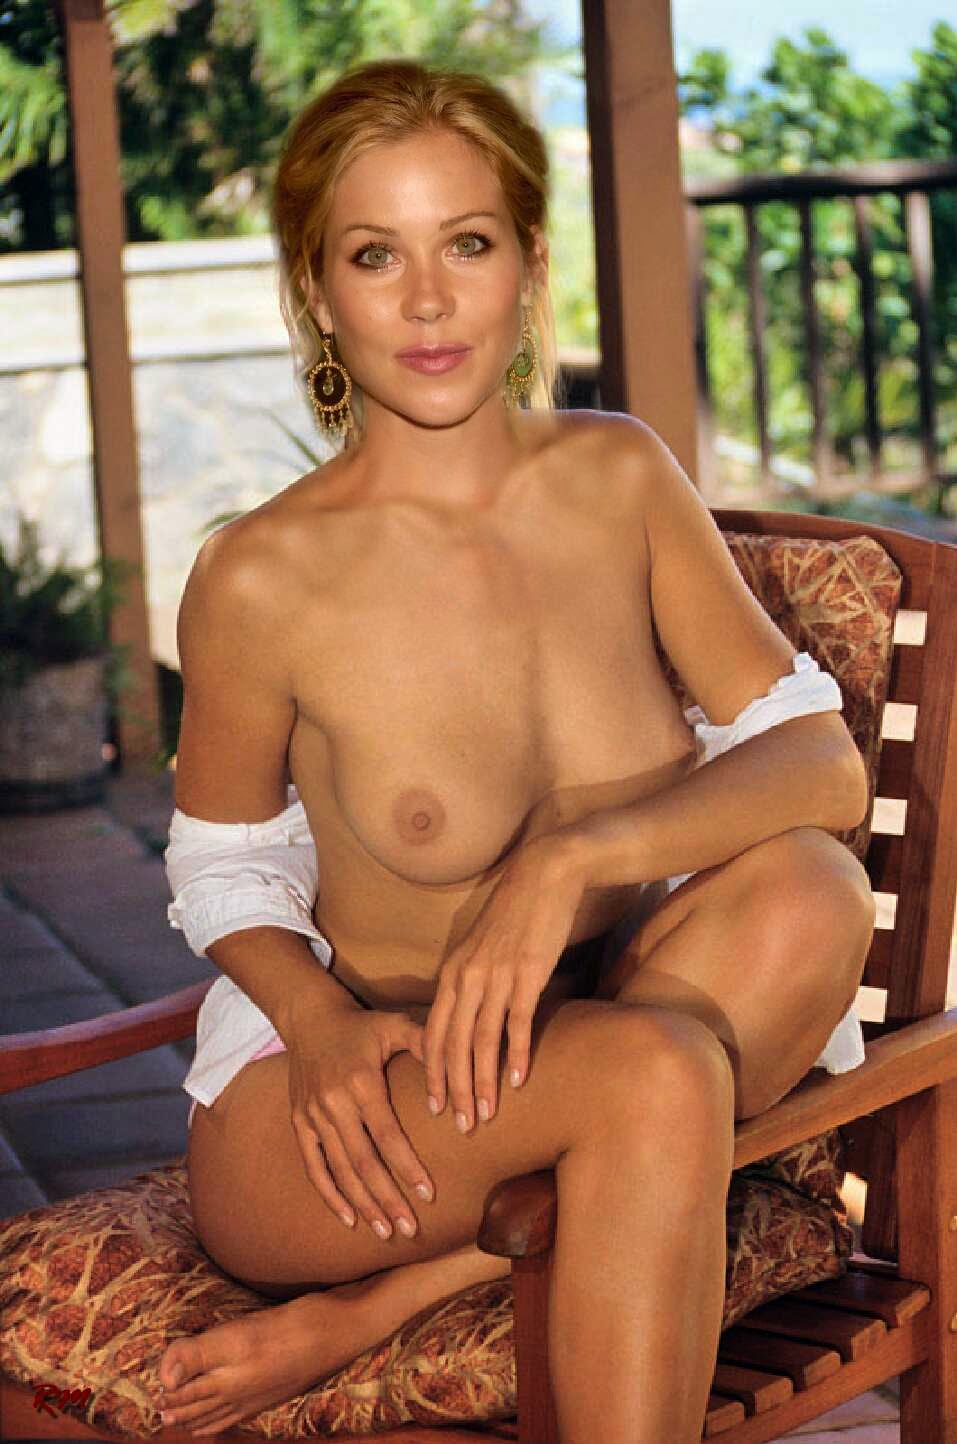 Naked pics of christina applegate sounds tempting